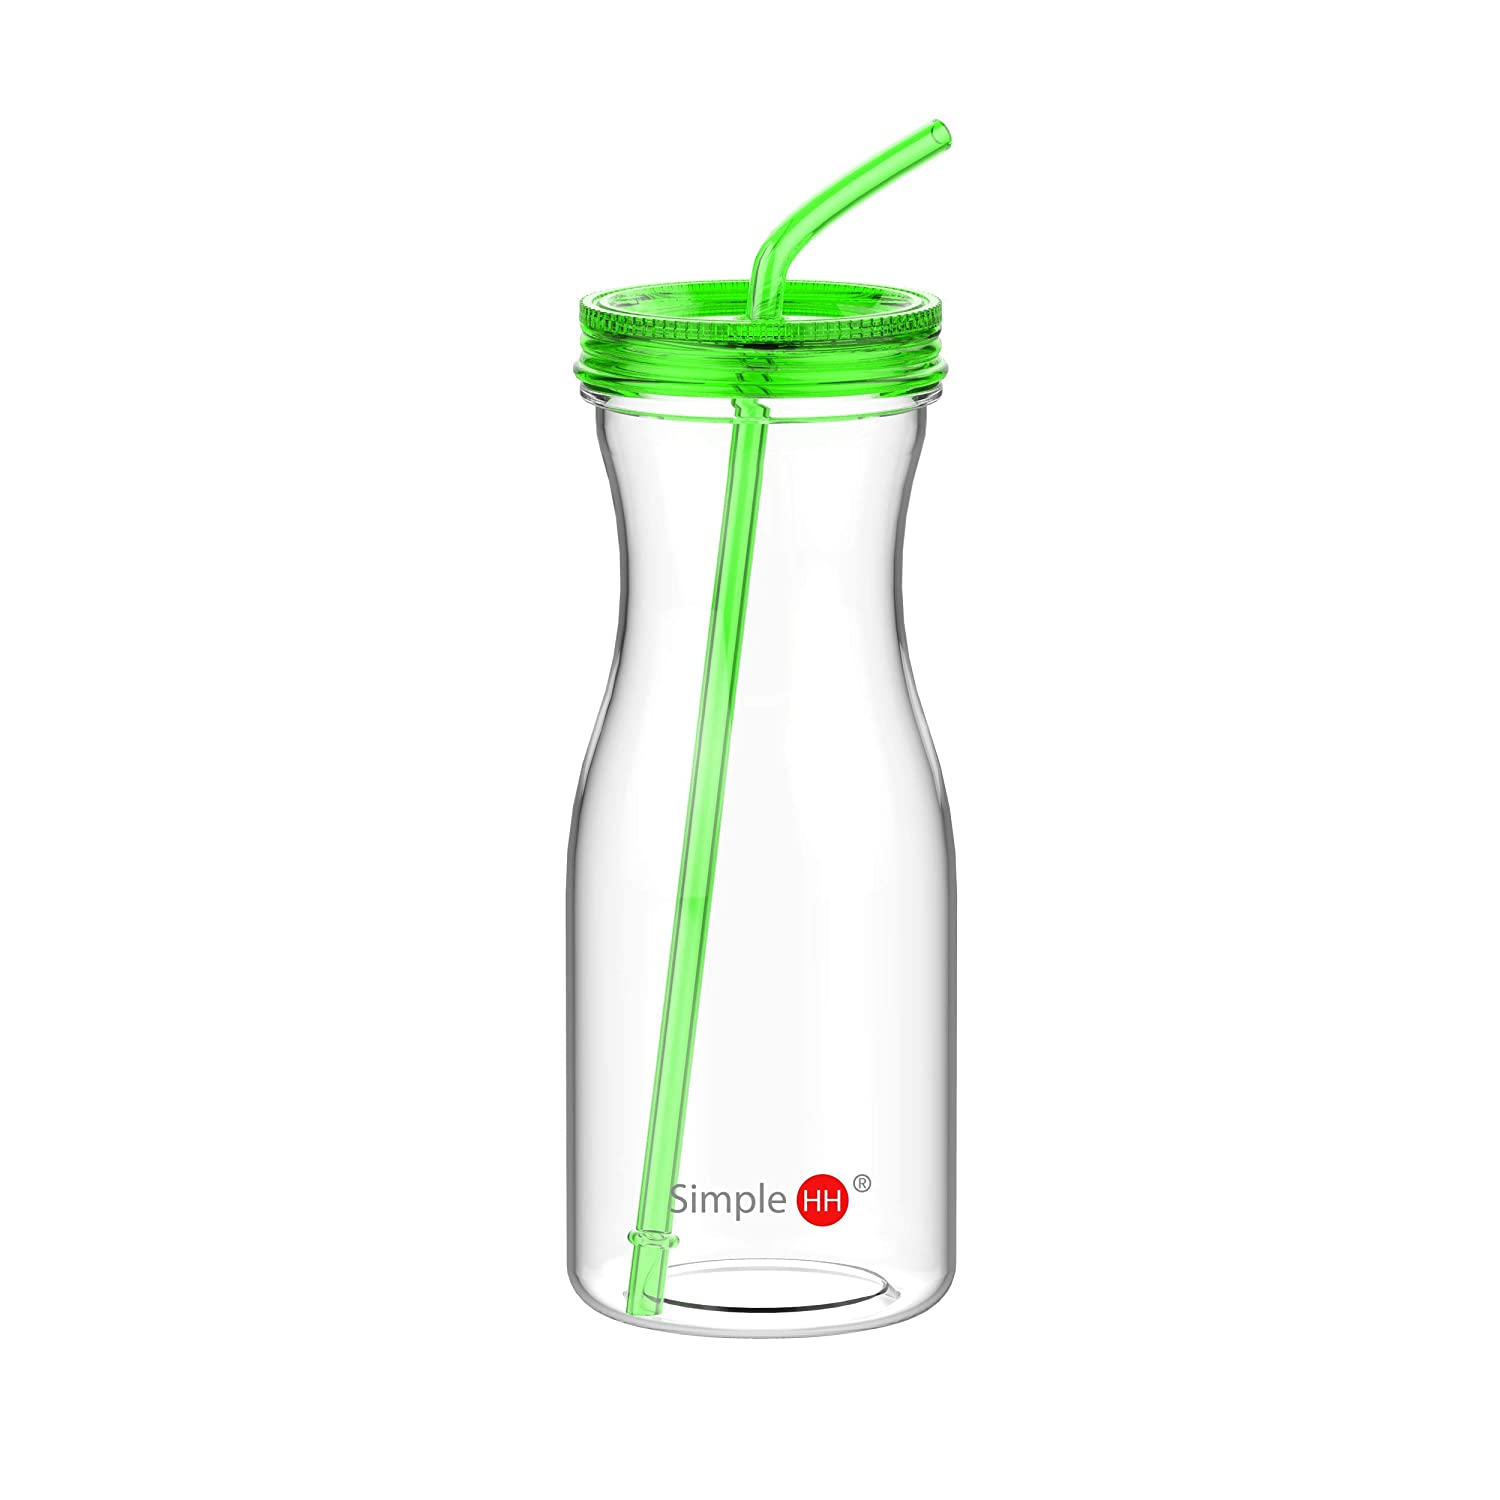 0d510c72f4fad7 Amazon.com   Simple HH BPA-Free Tritan Fitness Bottle Green Straw Bottle for  Office   Home Non-Toxic Eco-Friendly Water Bottle Outdoor Sports (Green) ...